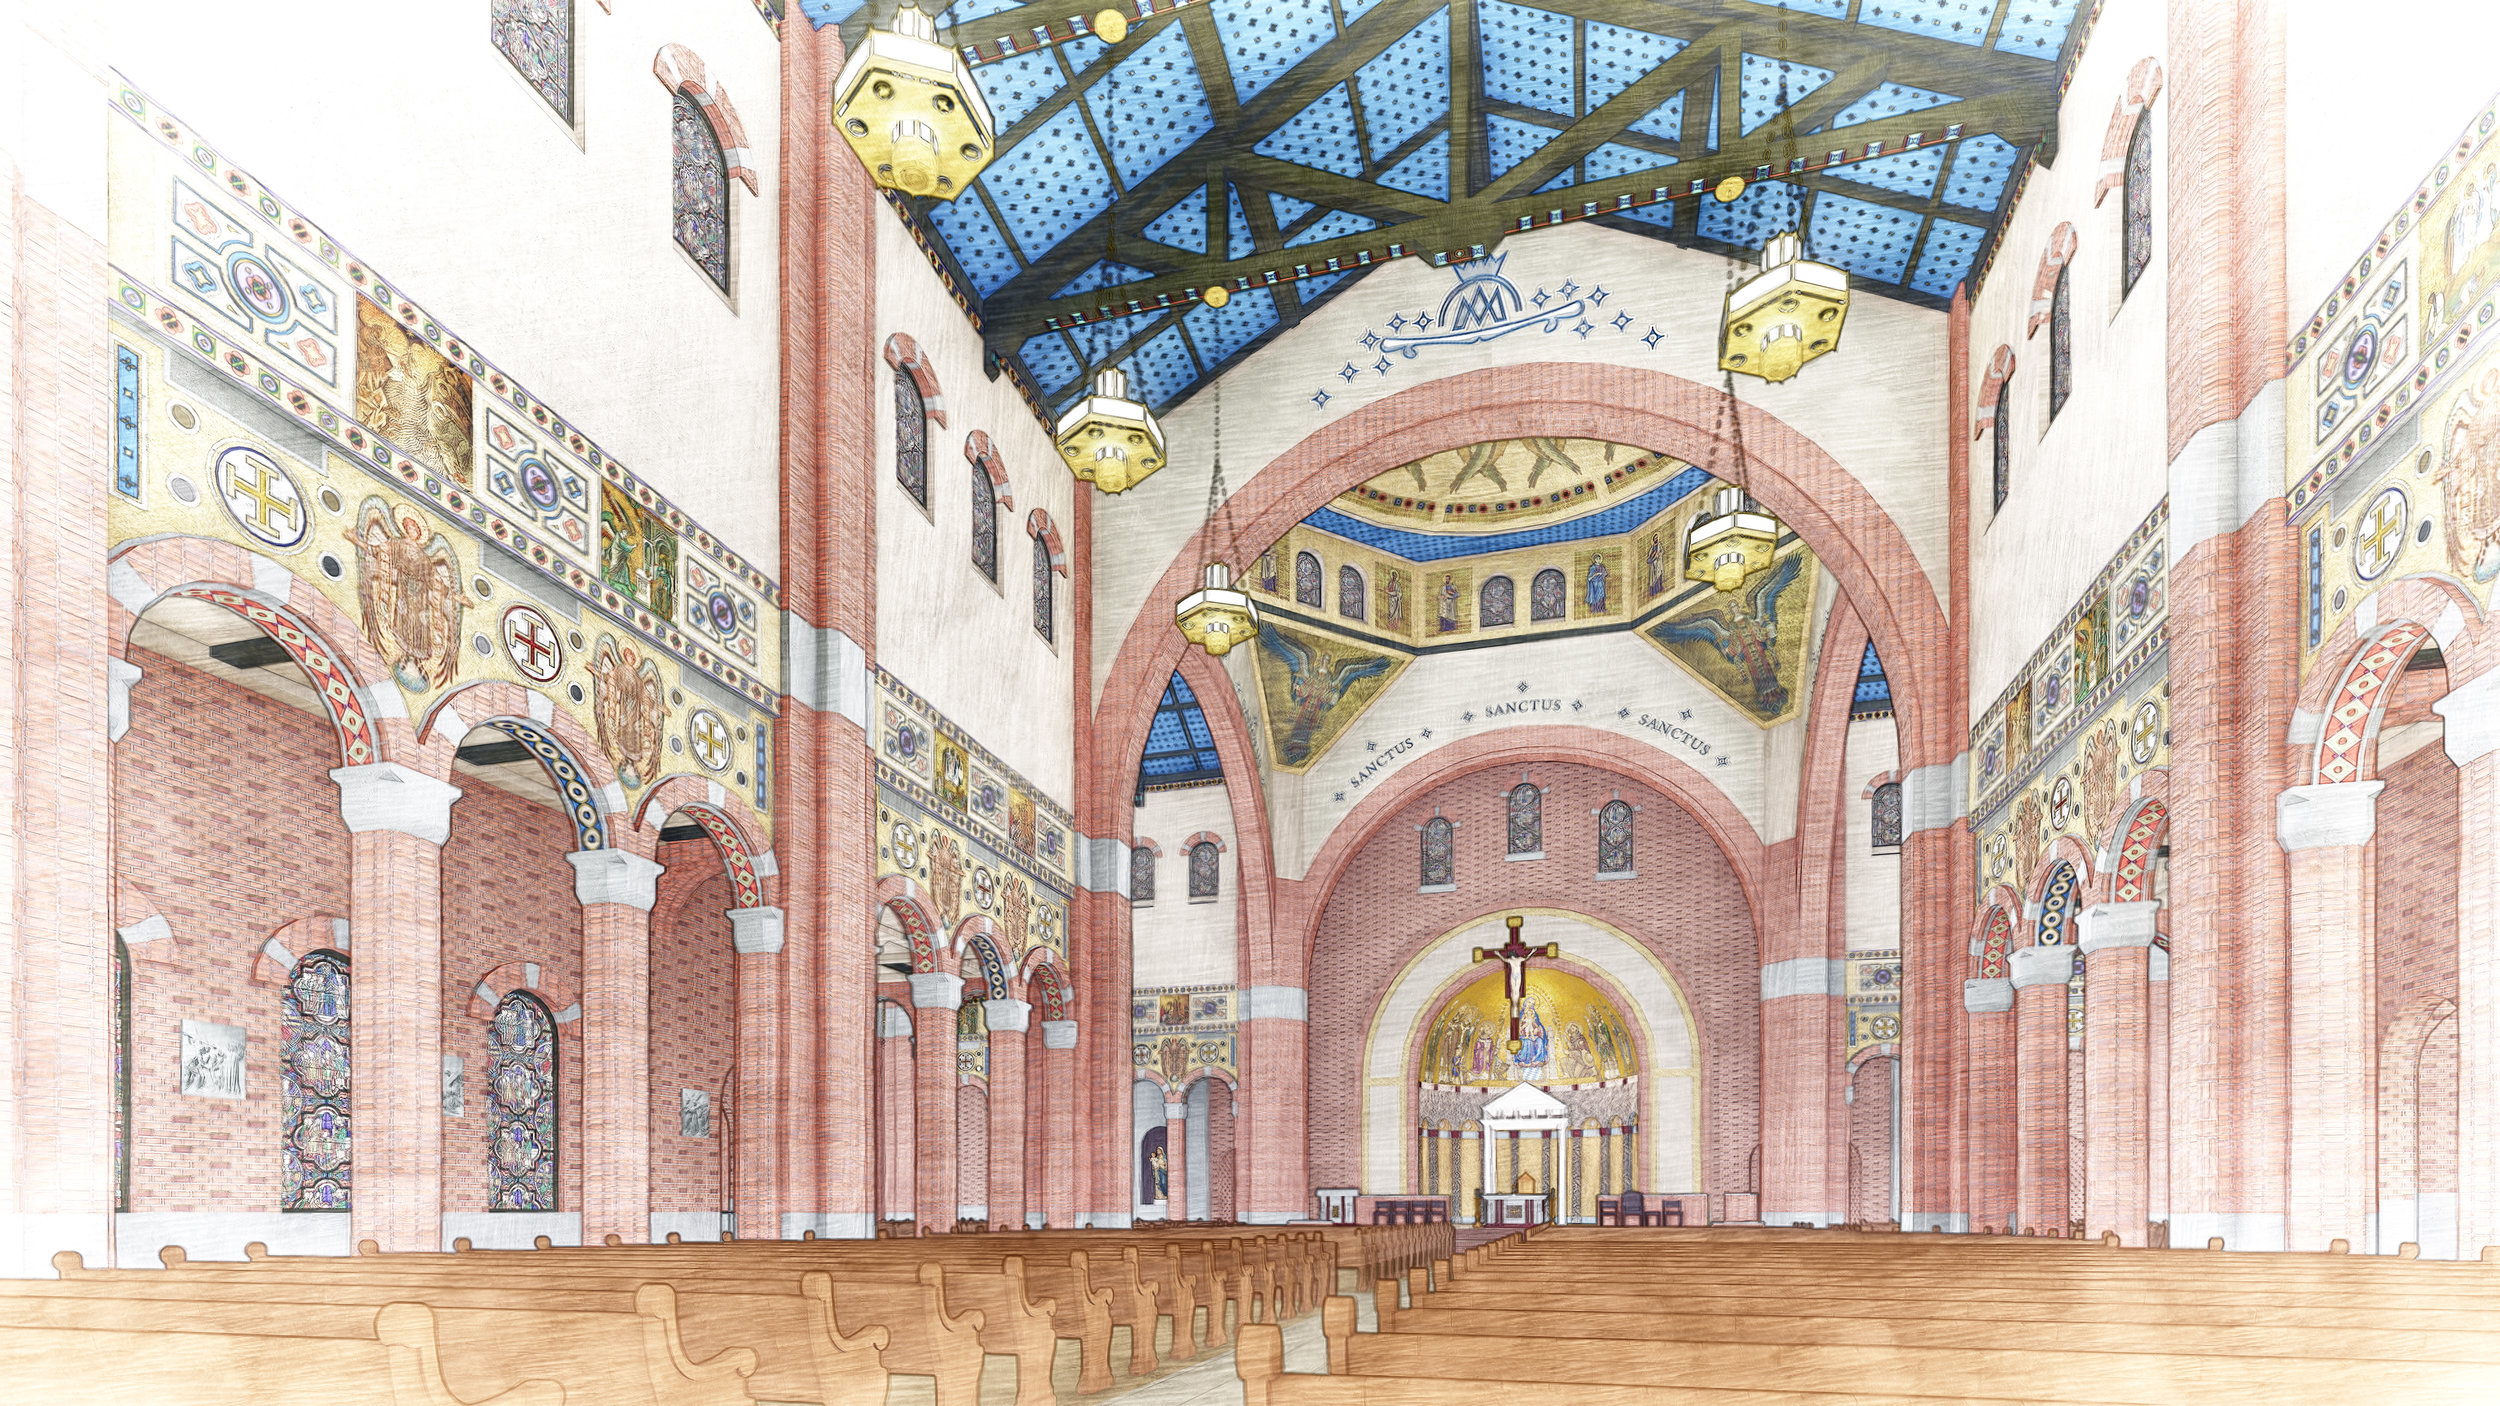 St. Mary's Church Conceptual Design photo as published in Texas Architect Magazine.